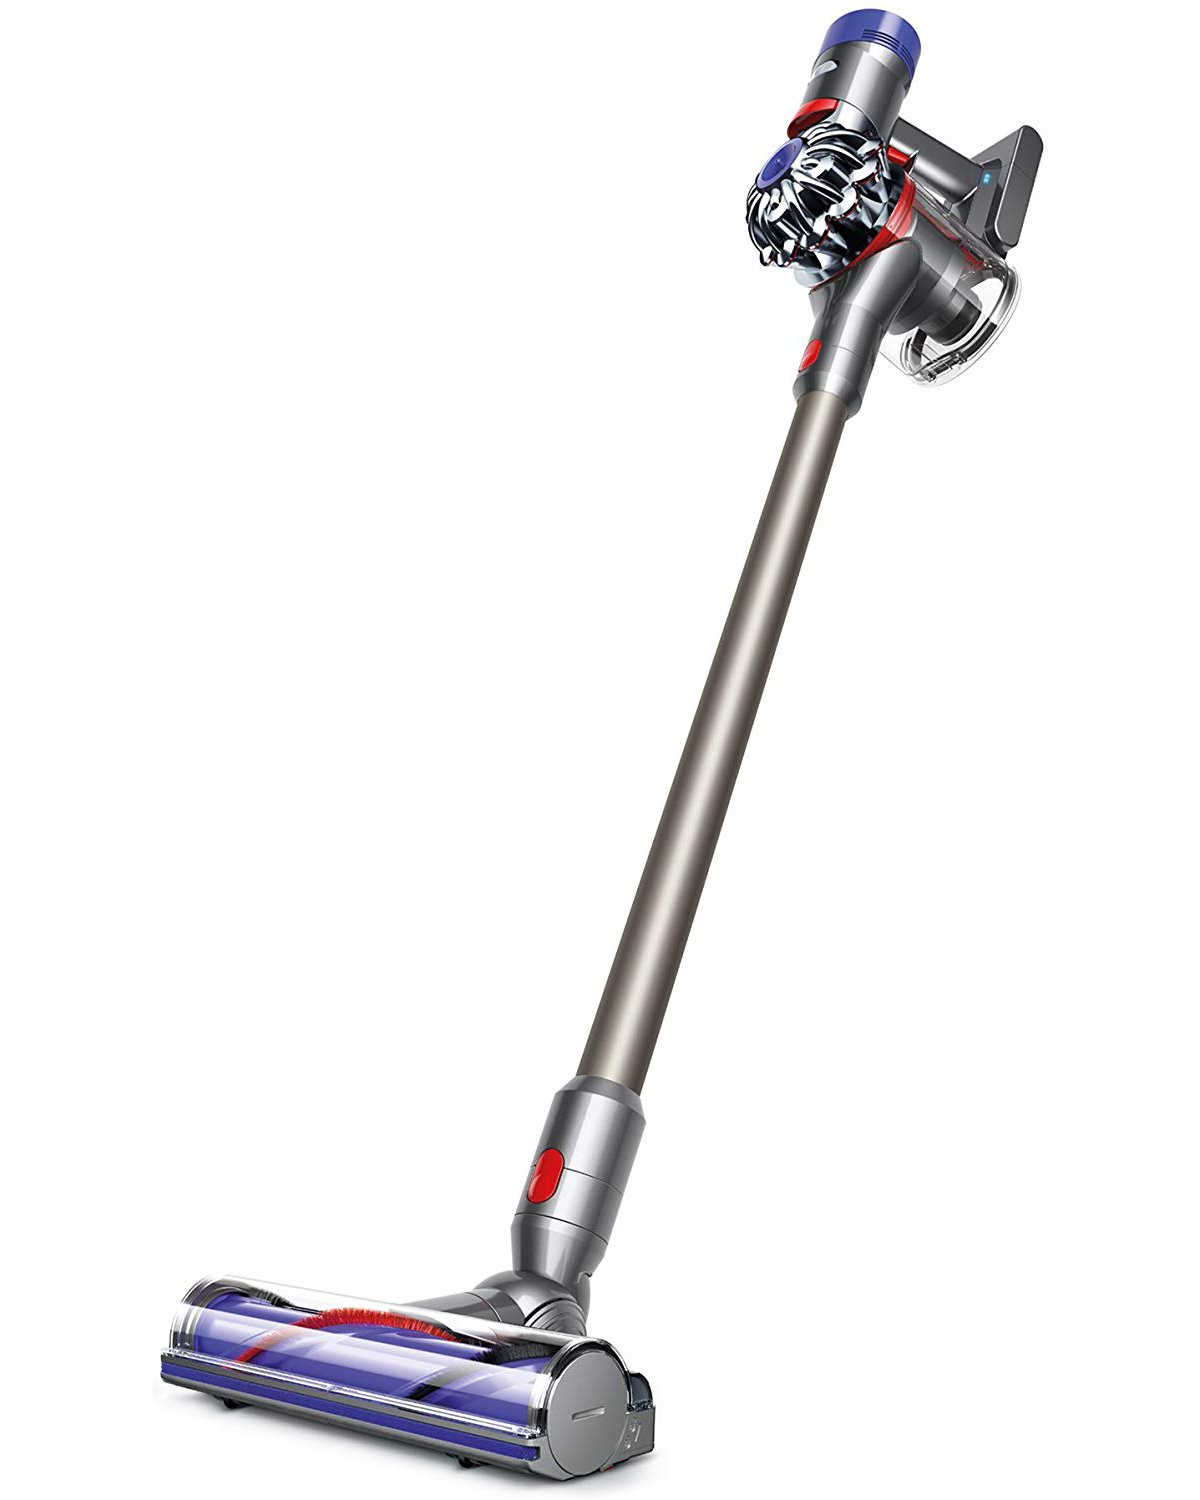 Dyson V8 Animal Cordless Stick Vacuum Cleaner - Iron